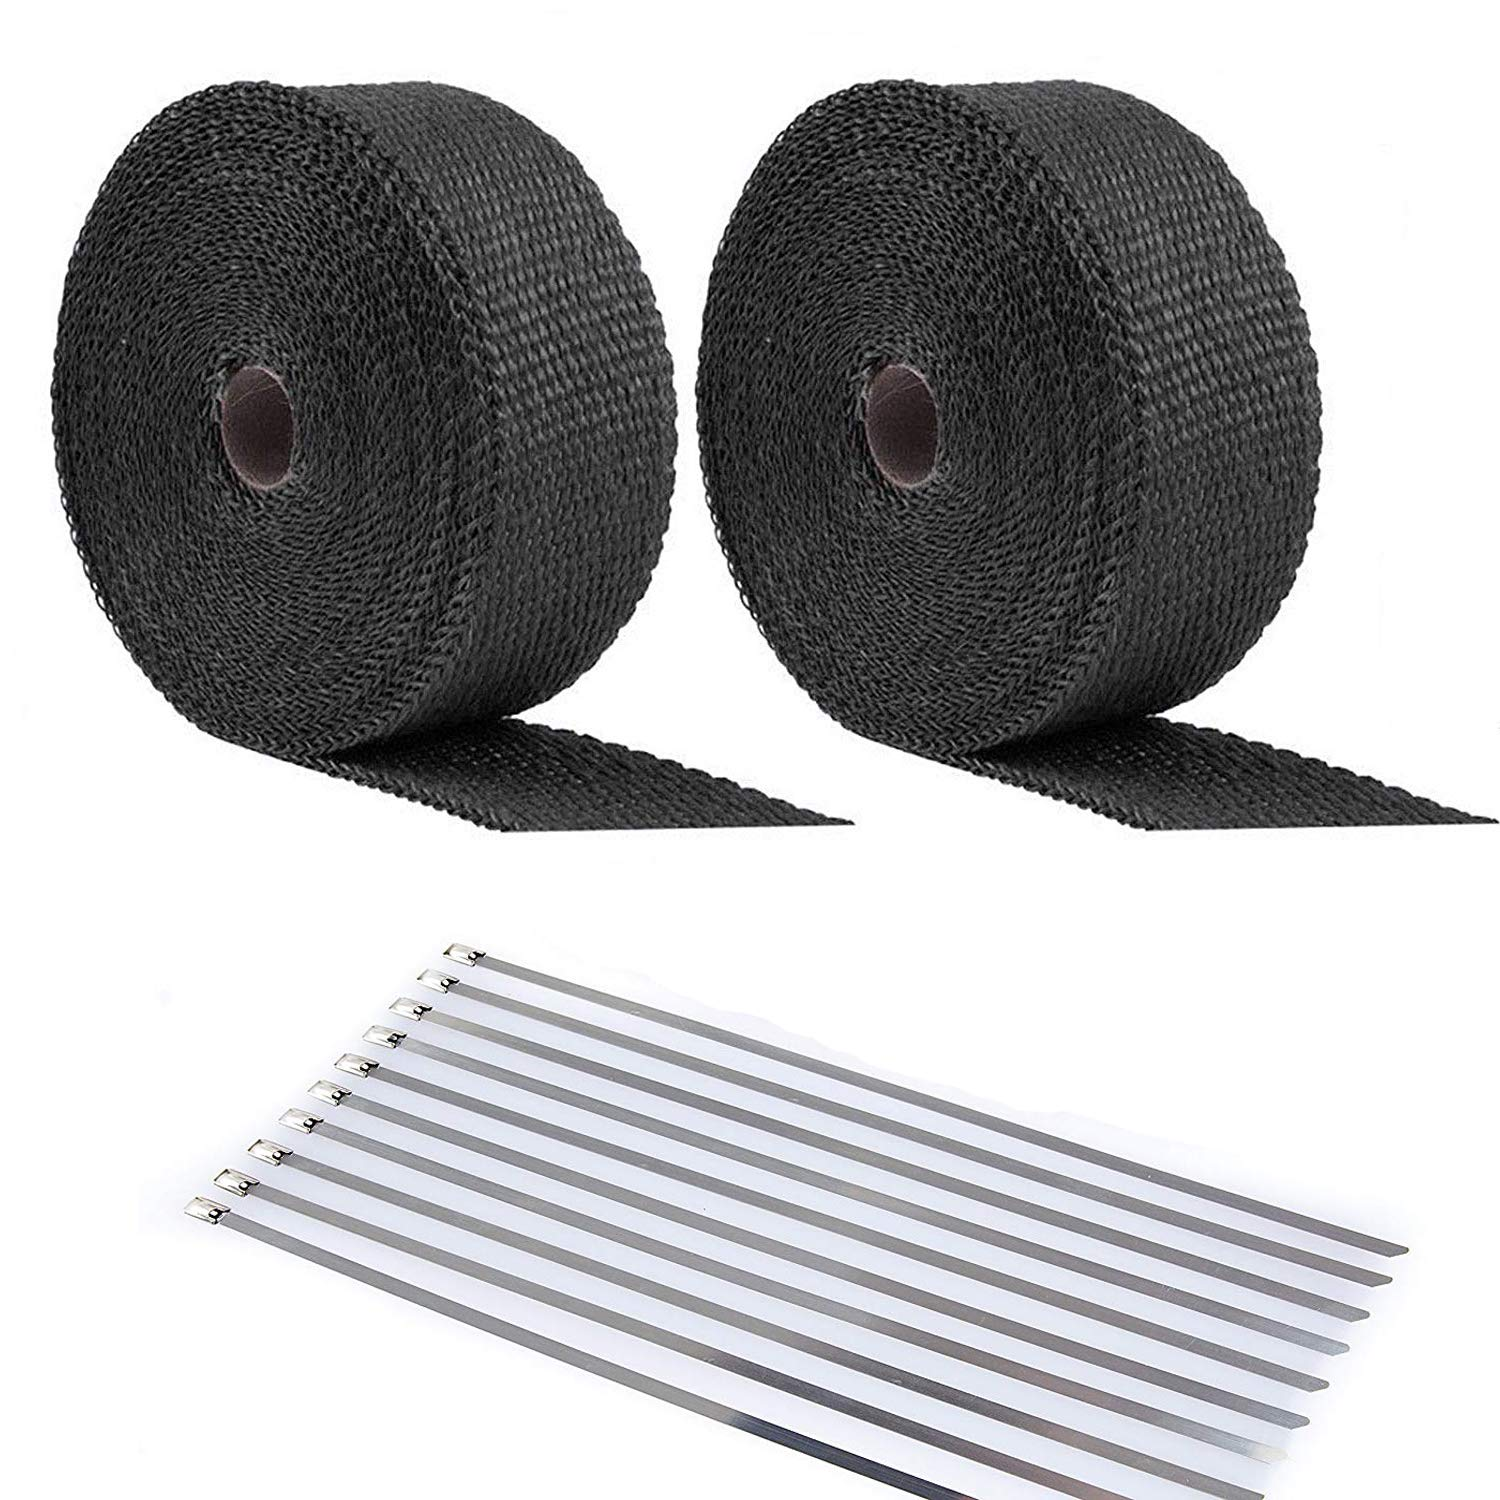 ANTS PART 20Pcs Ties + 2 Roll x 50FT Black Motorcycle Exhaust Heat Wrap Roll Fiberglass Heat Shield Tape (2 Roll + 20 Ties Kit) by ANTS PART